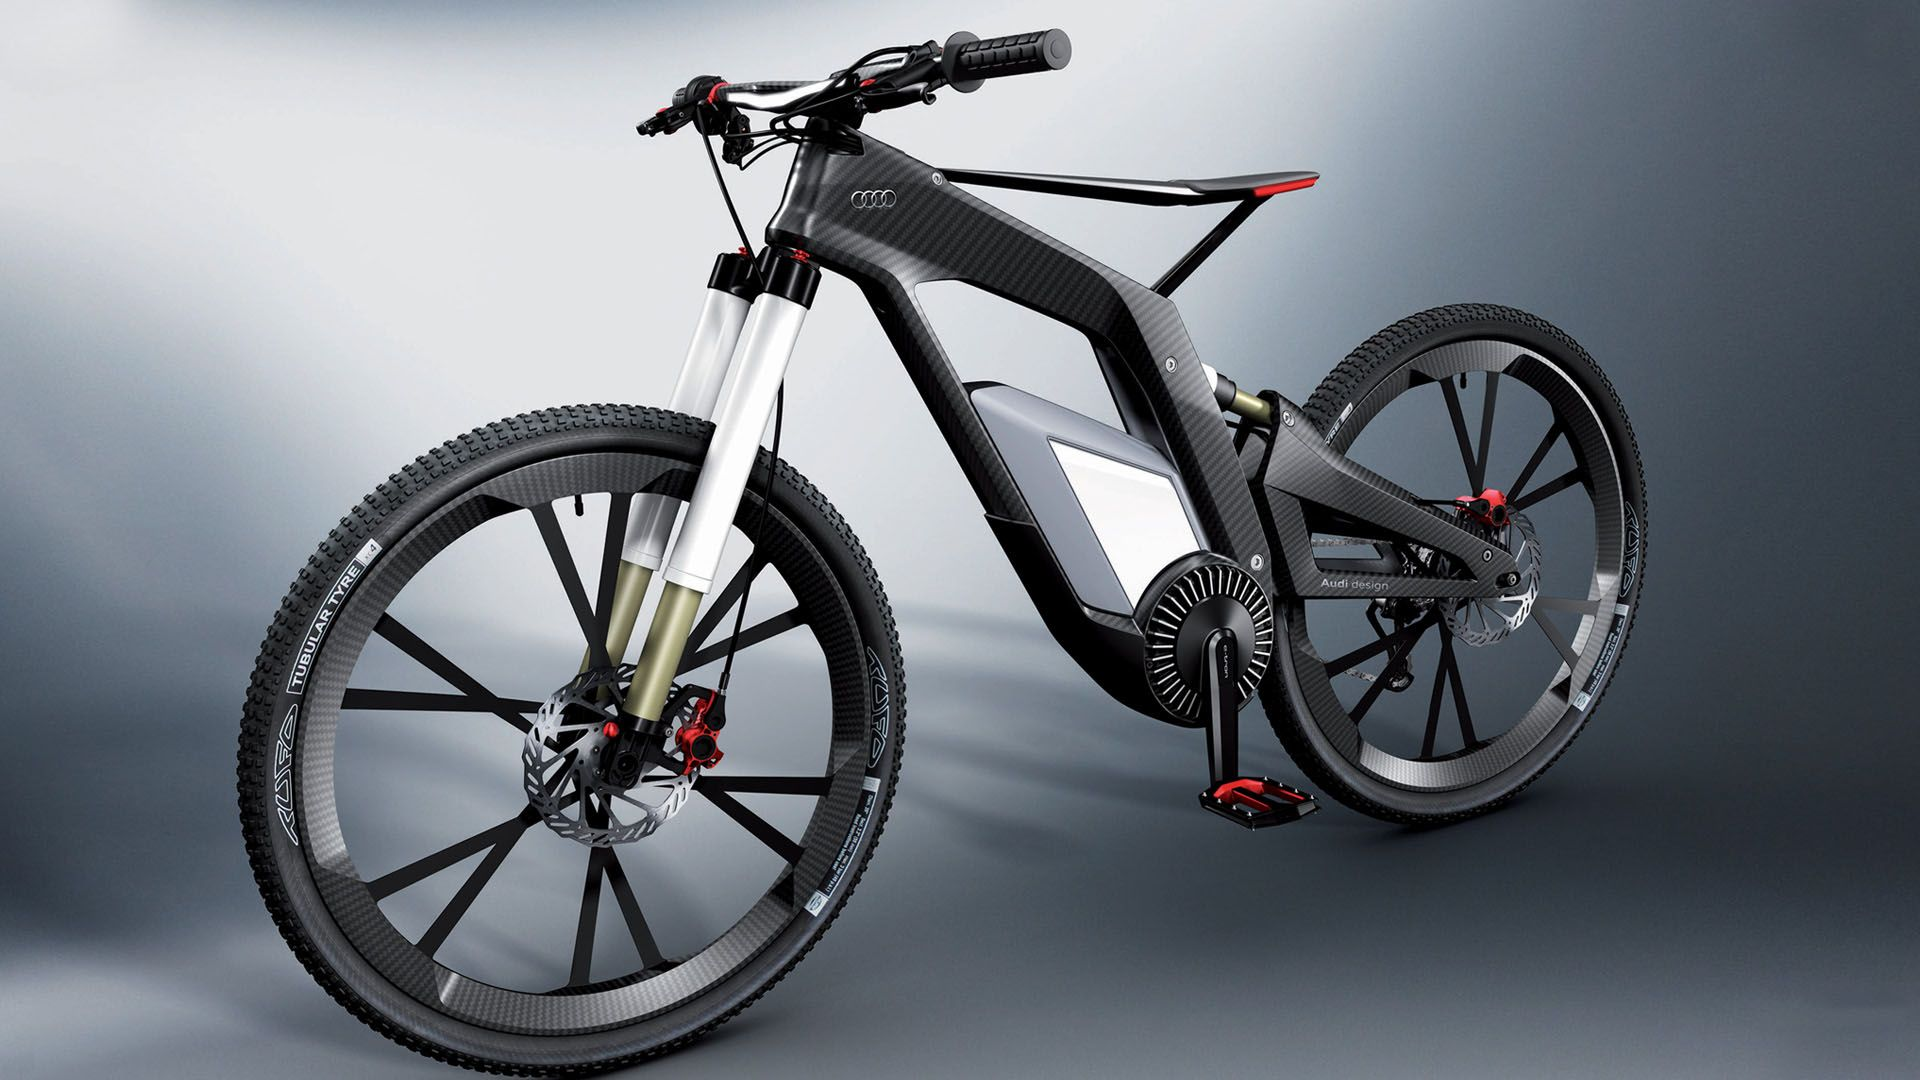 Best Hitech Bicycle Wallpapers Love the Look of